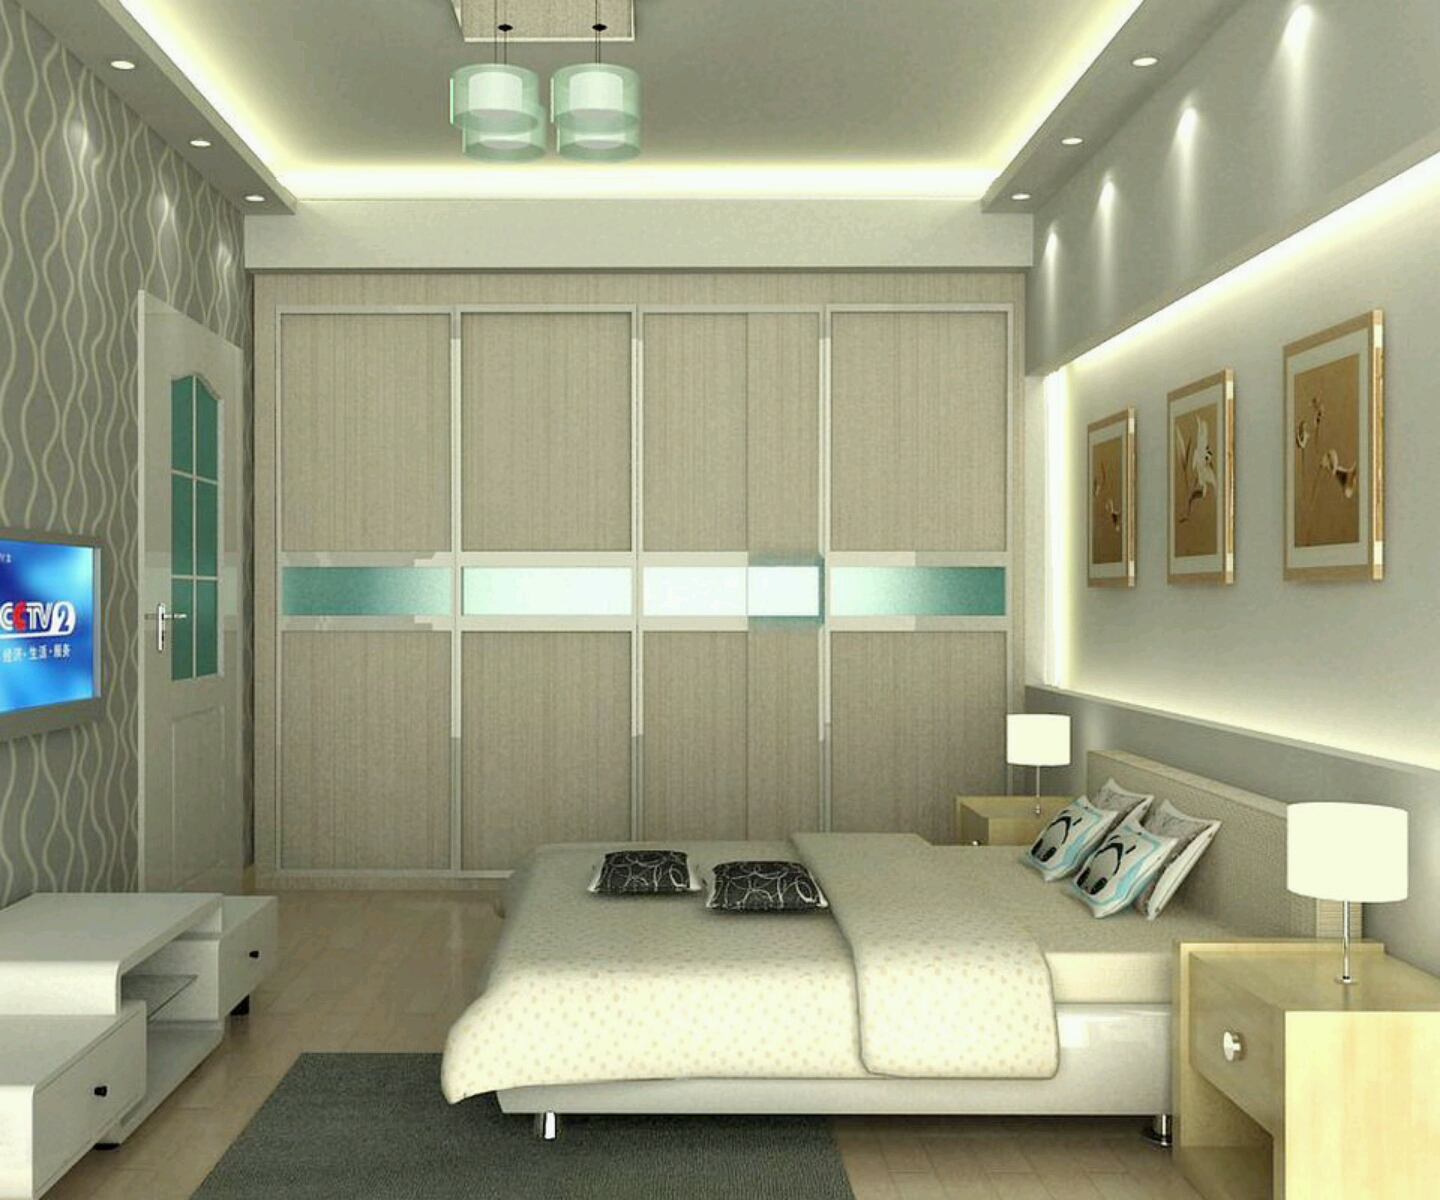 amazing bedroom designs latest images - best image engine